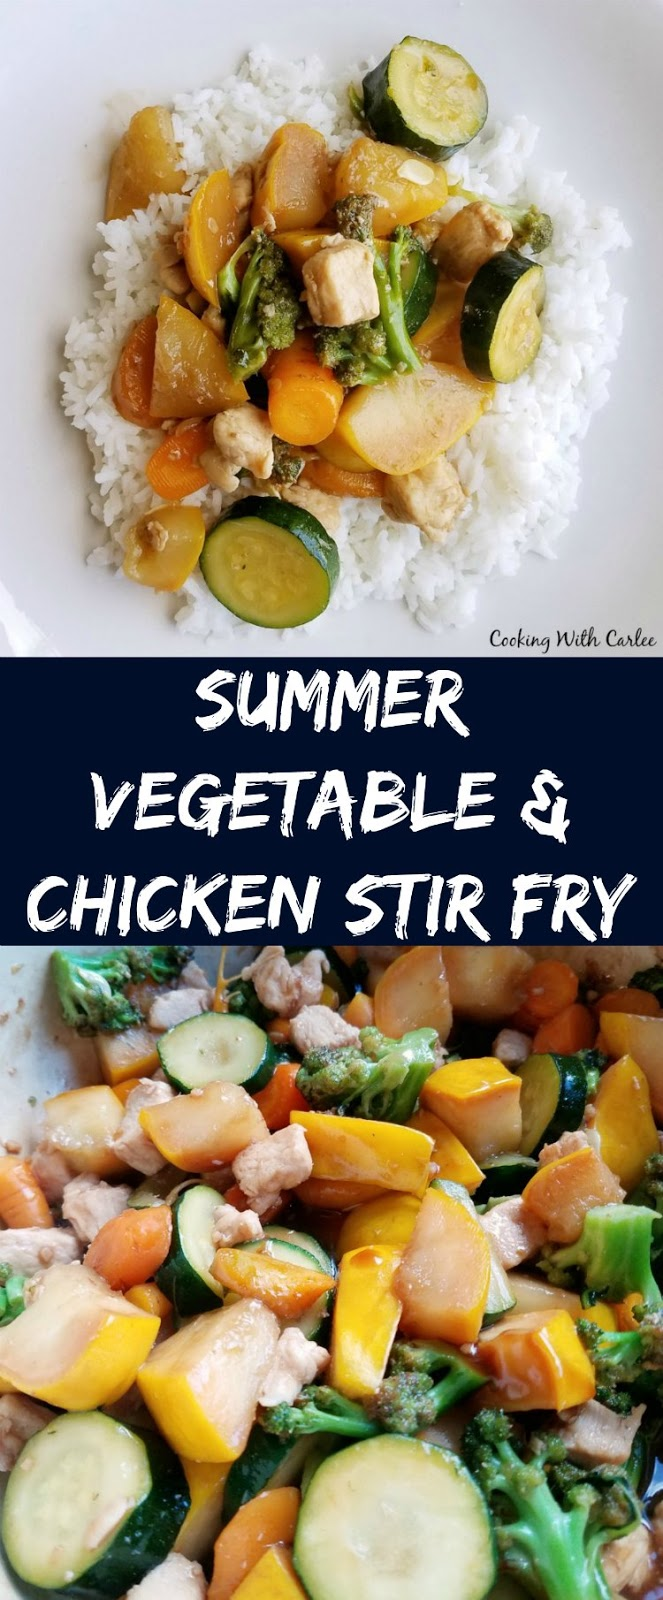 Summer vegetables and chicken are quickly cooked until tender crisp and then coated in a delicious stir fry sauce.  Dinner is ready by the time the rice is done cooking!